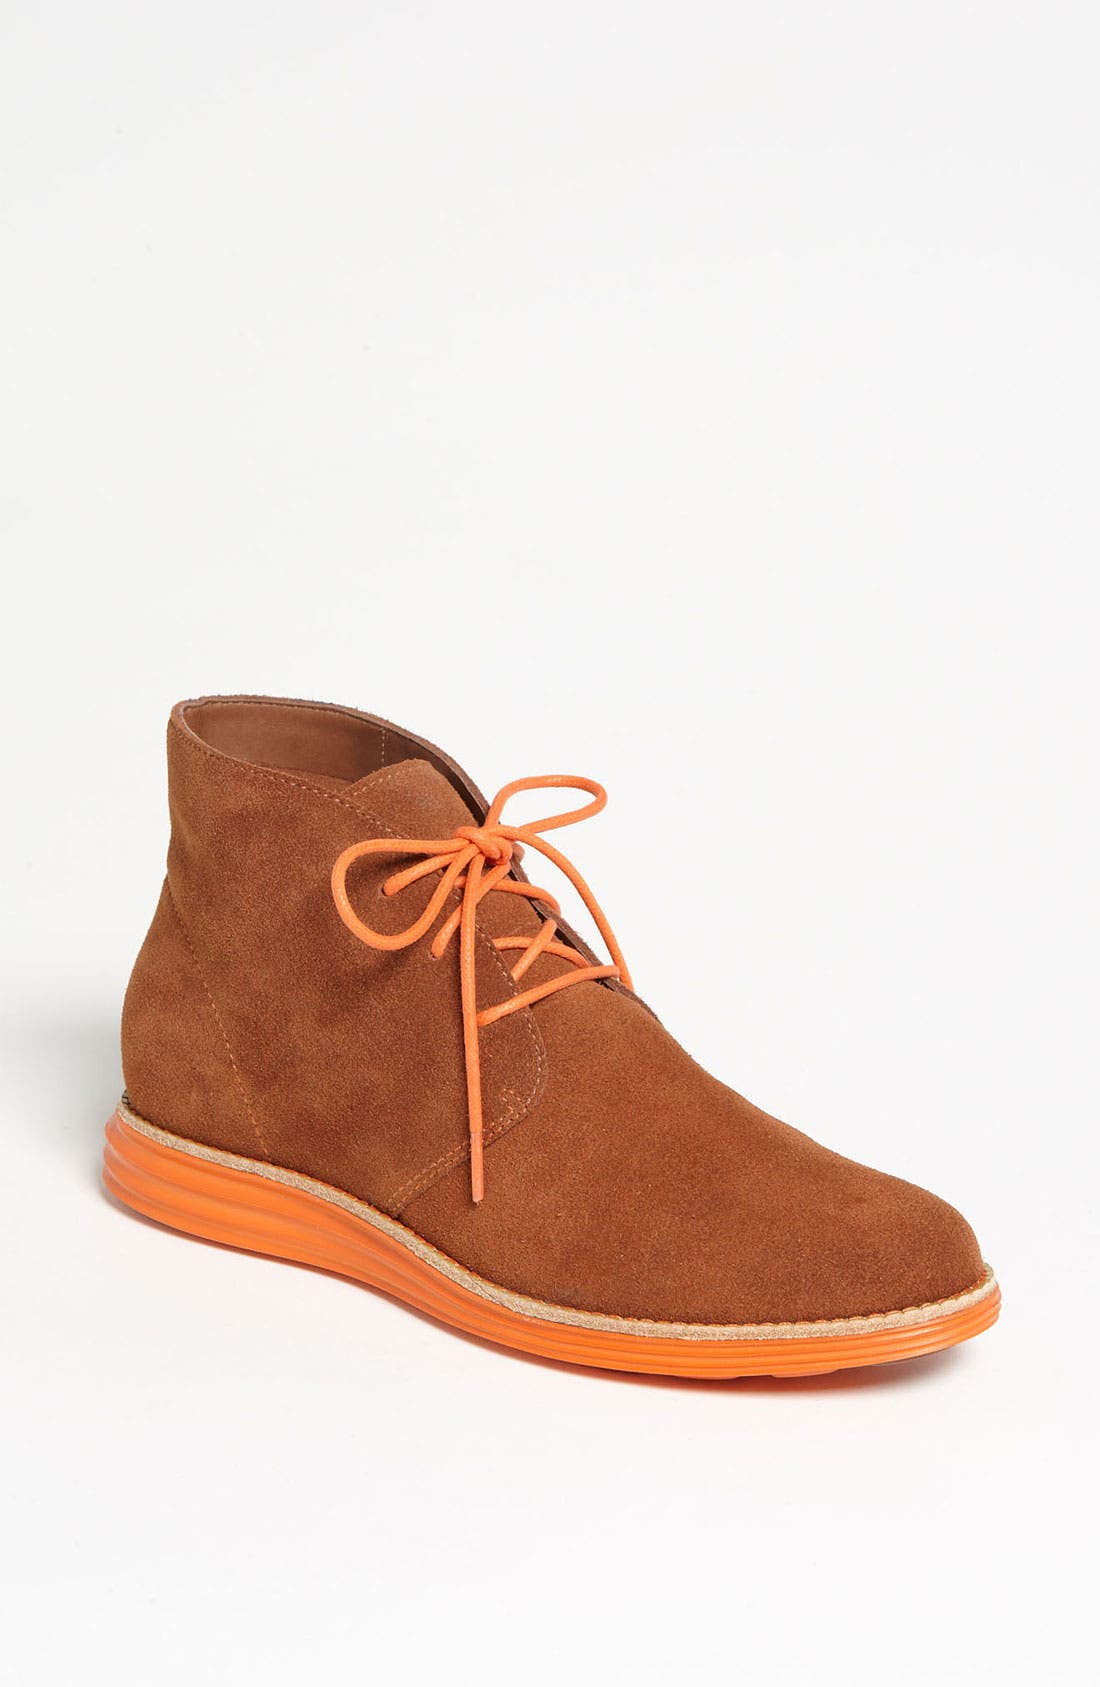 Alternate Image 1 Selected - Cole Haan 'LunarGrand' Chukka Boot